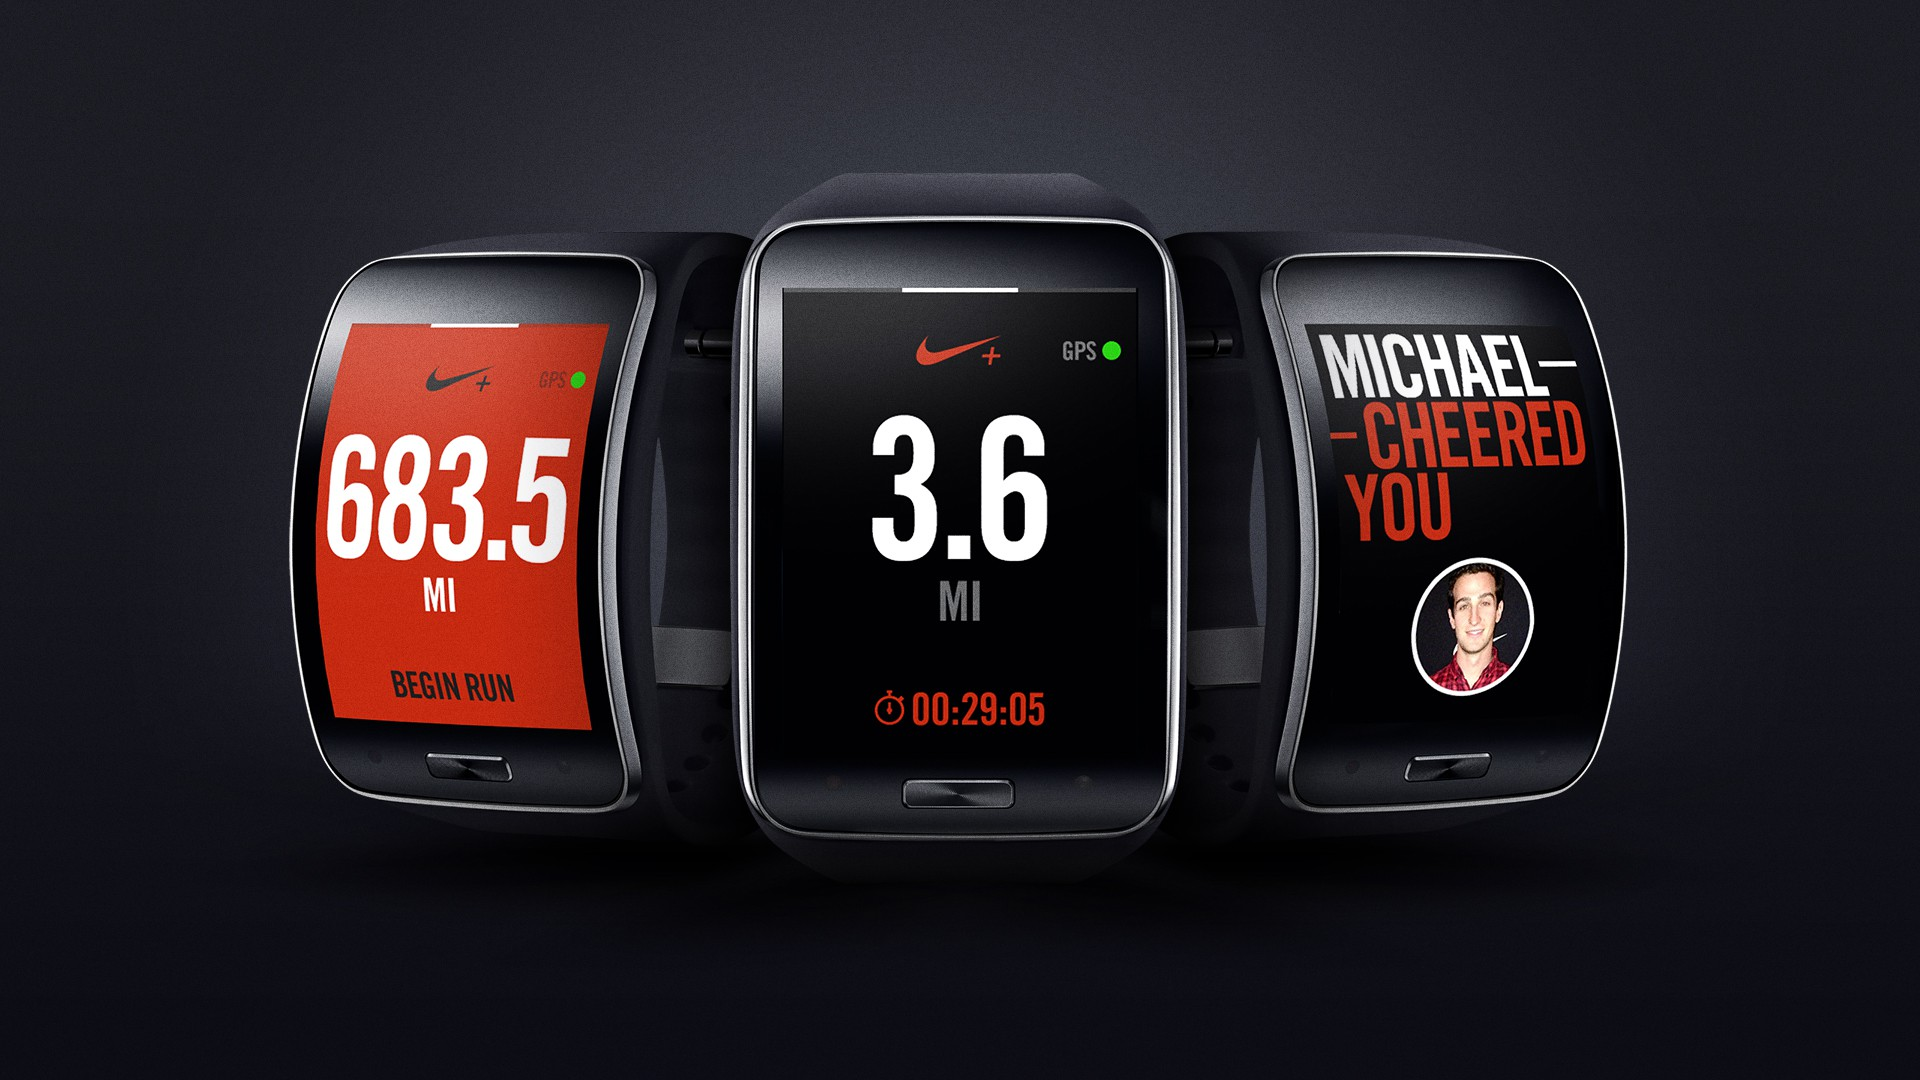 Samsung partners with Nike to adds Nike + Running app to Tizen eco-system